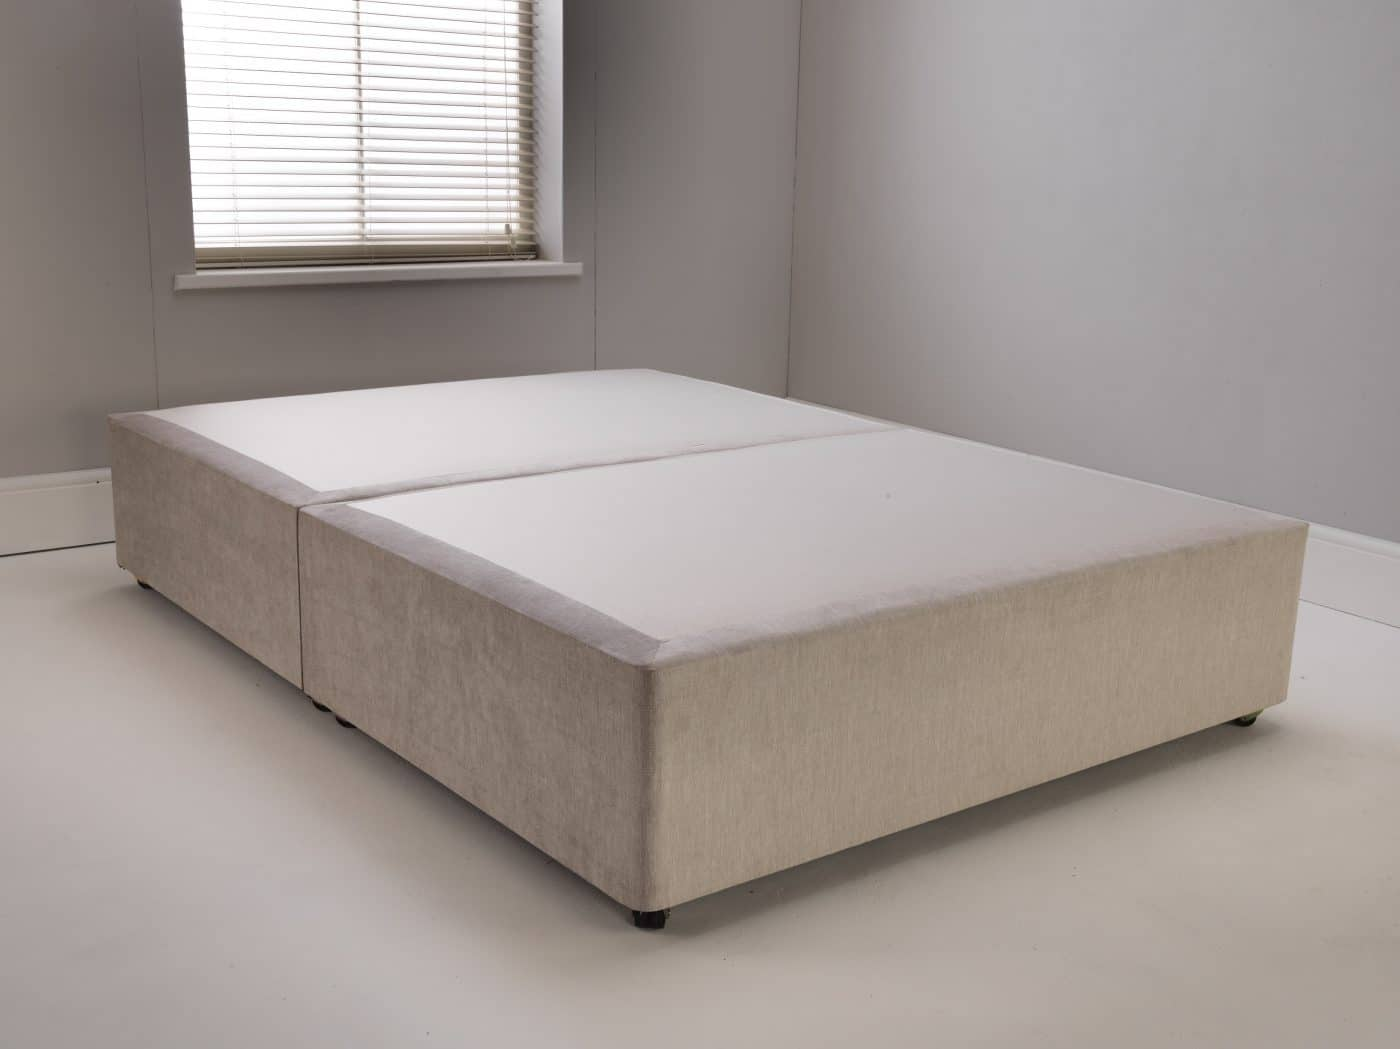 Luxury Beds - Sprung Divan